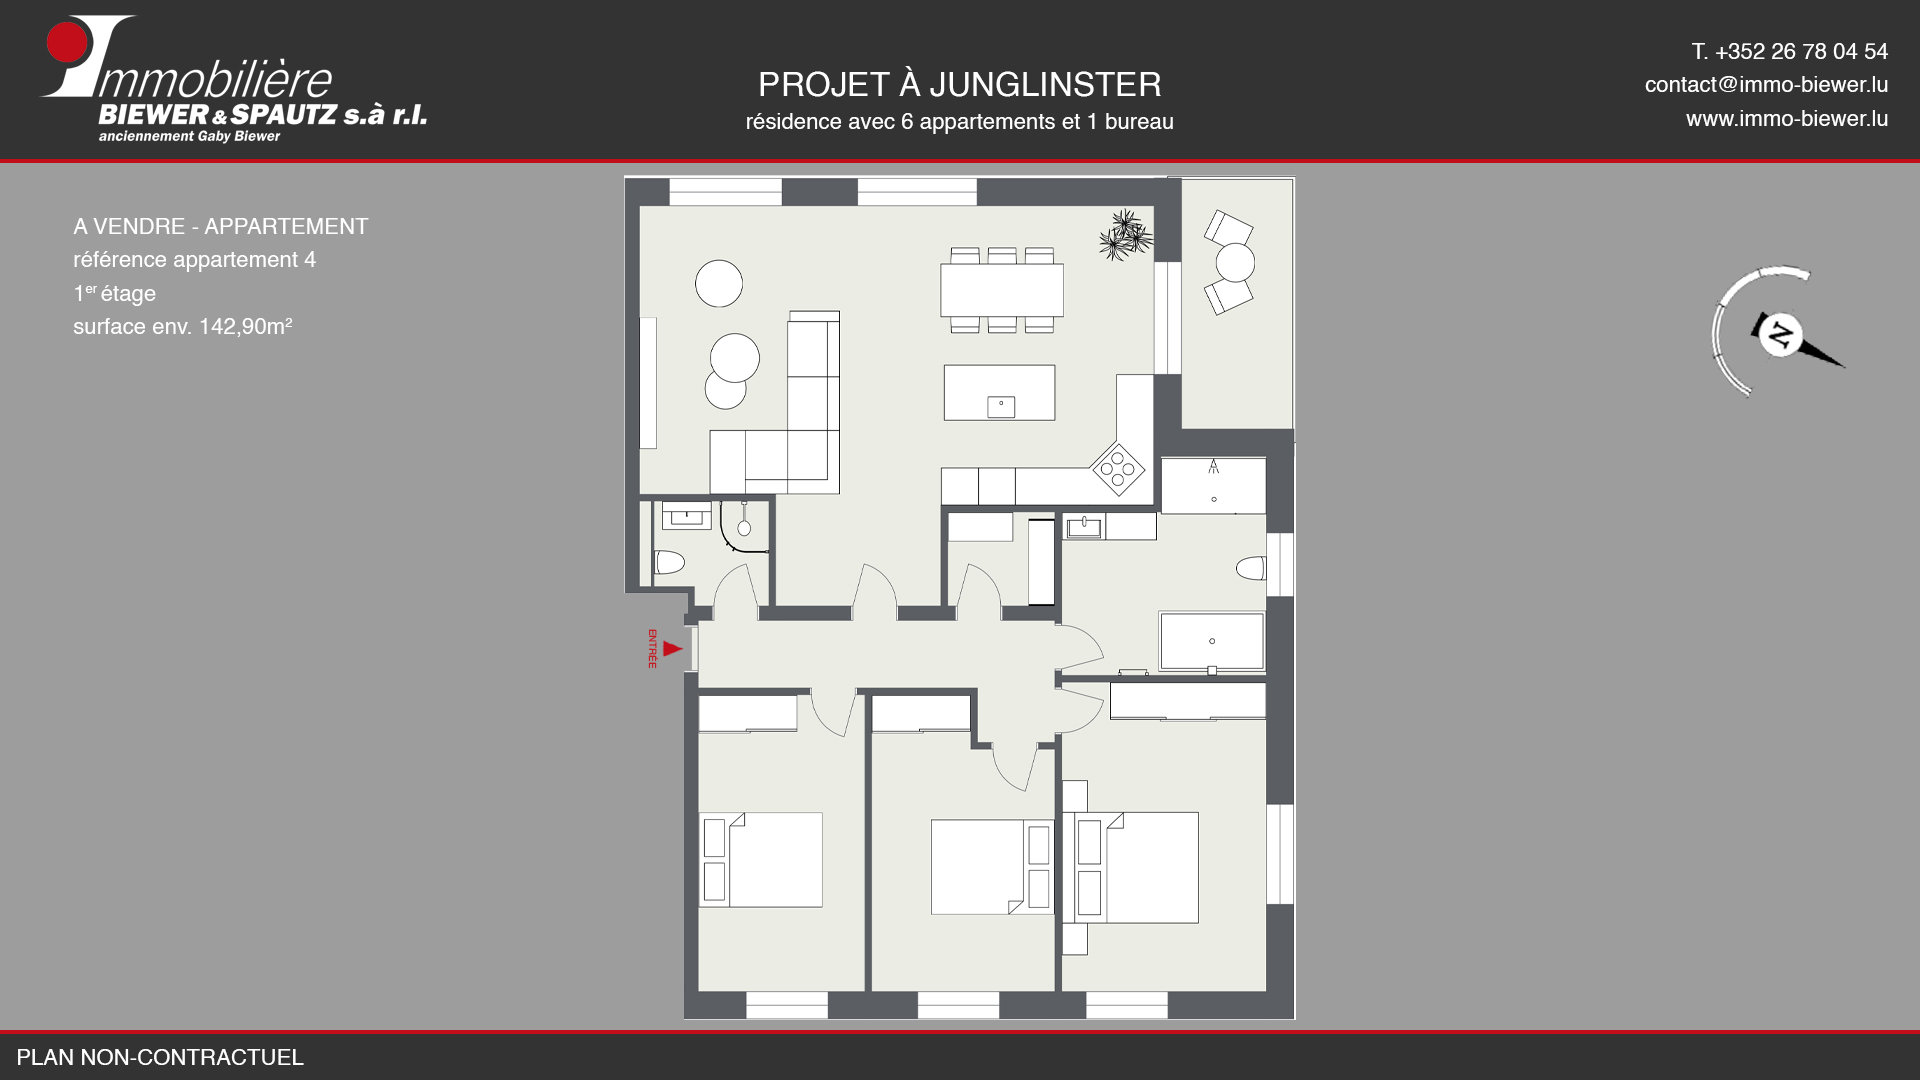 SOLD - appartment with 3 bedrooms in Junglinster